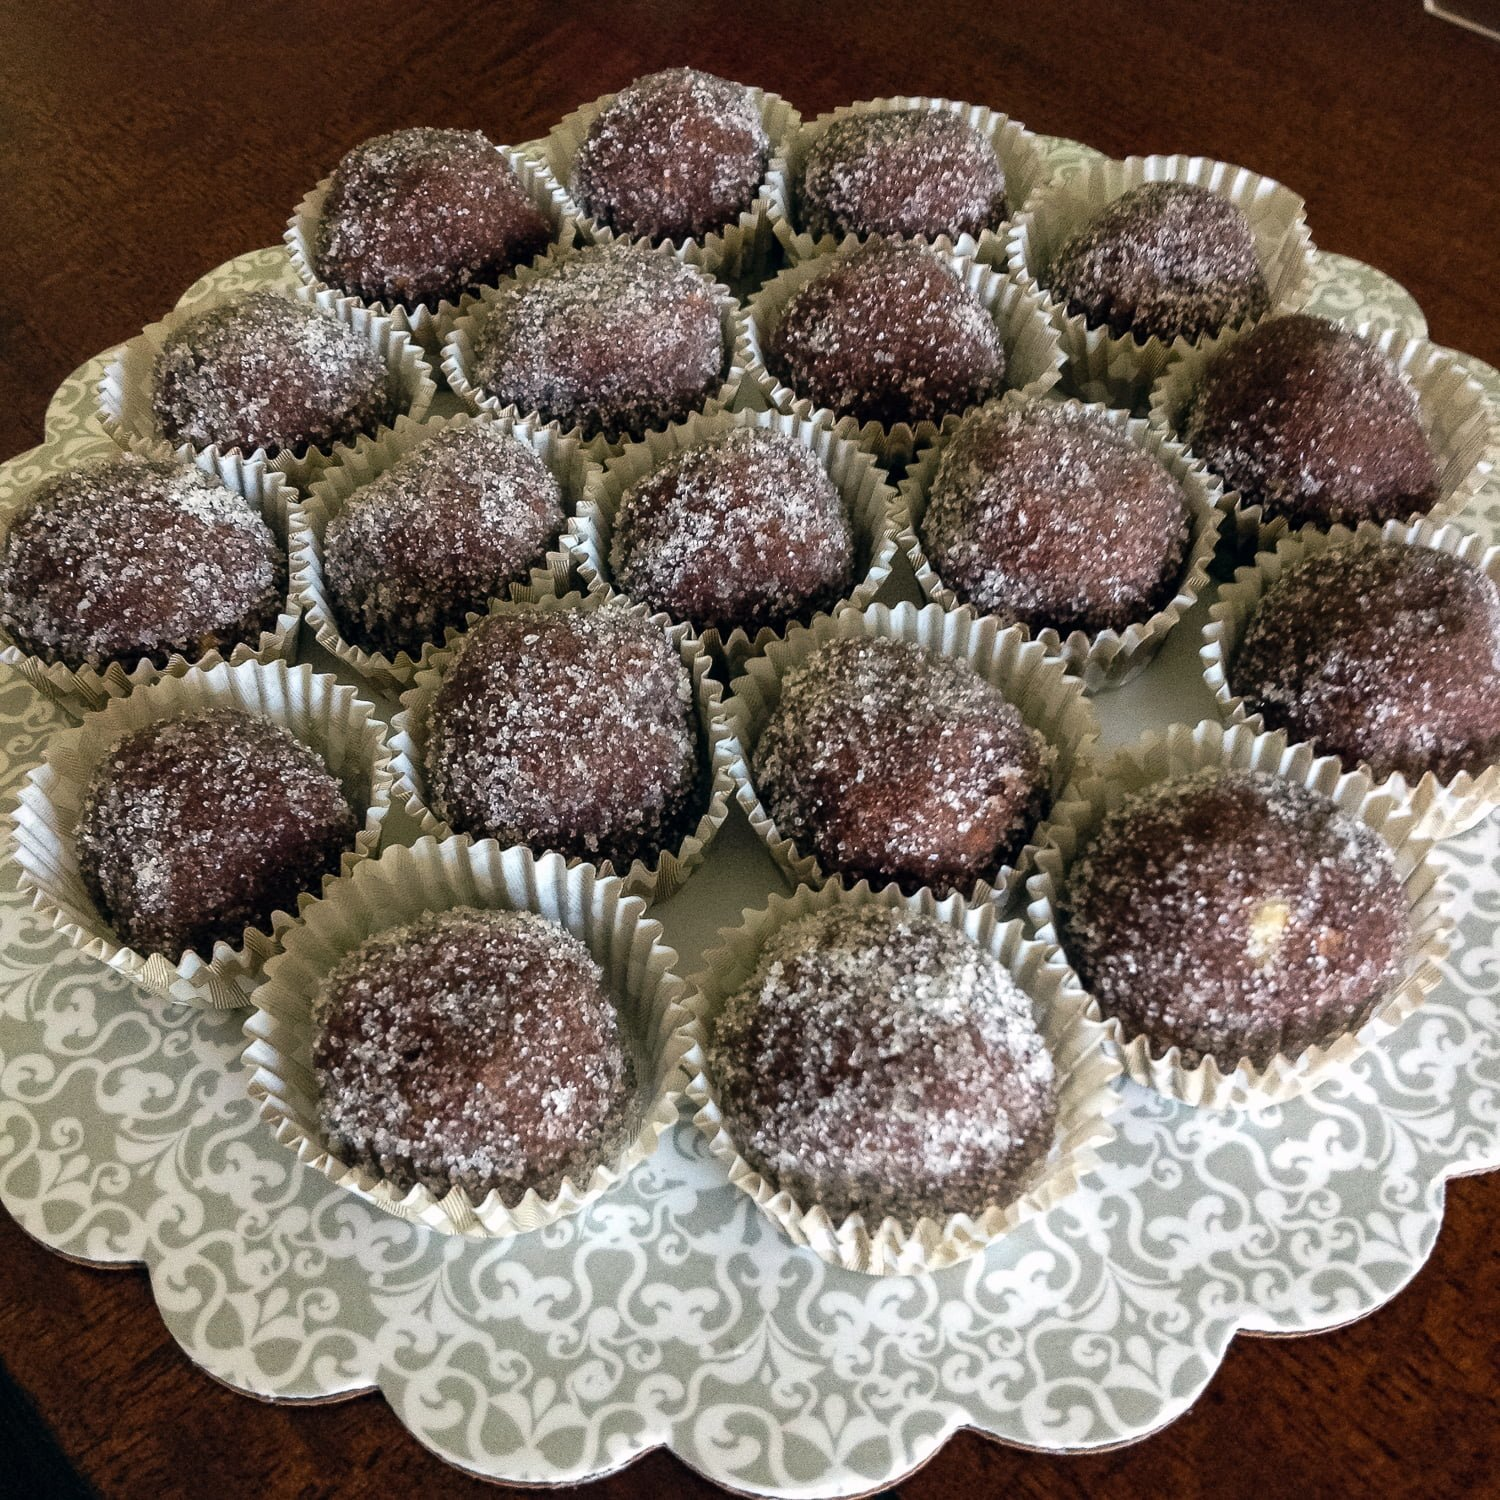 This classic rum balls recipe can be made in no time and is perfect for the holidays.